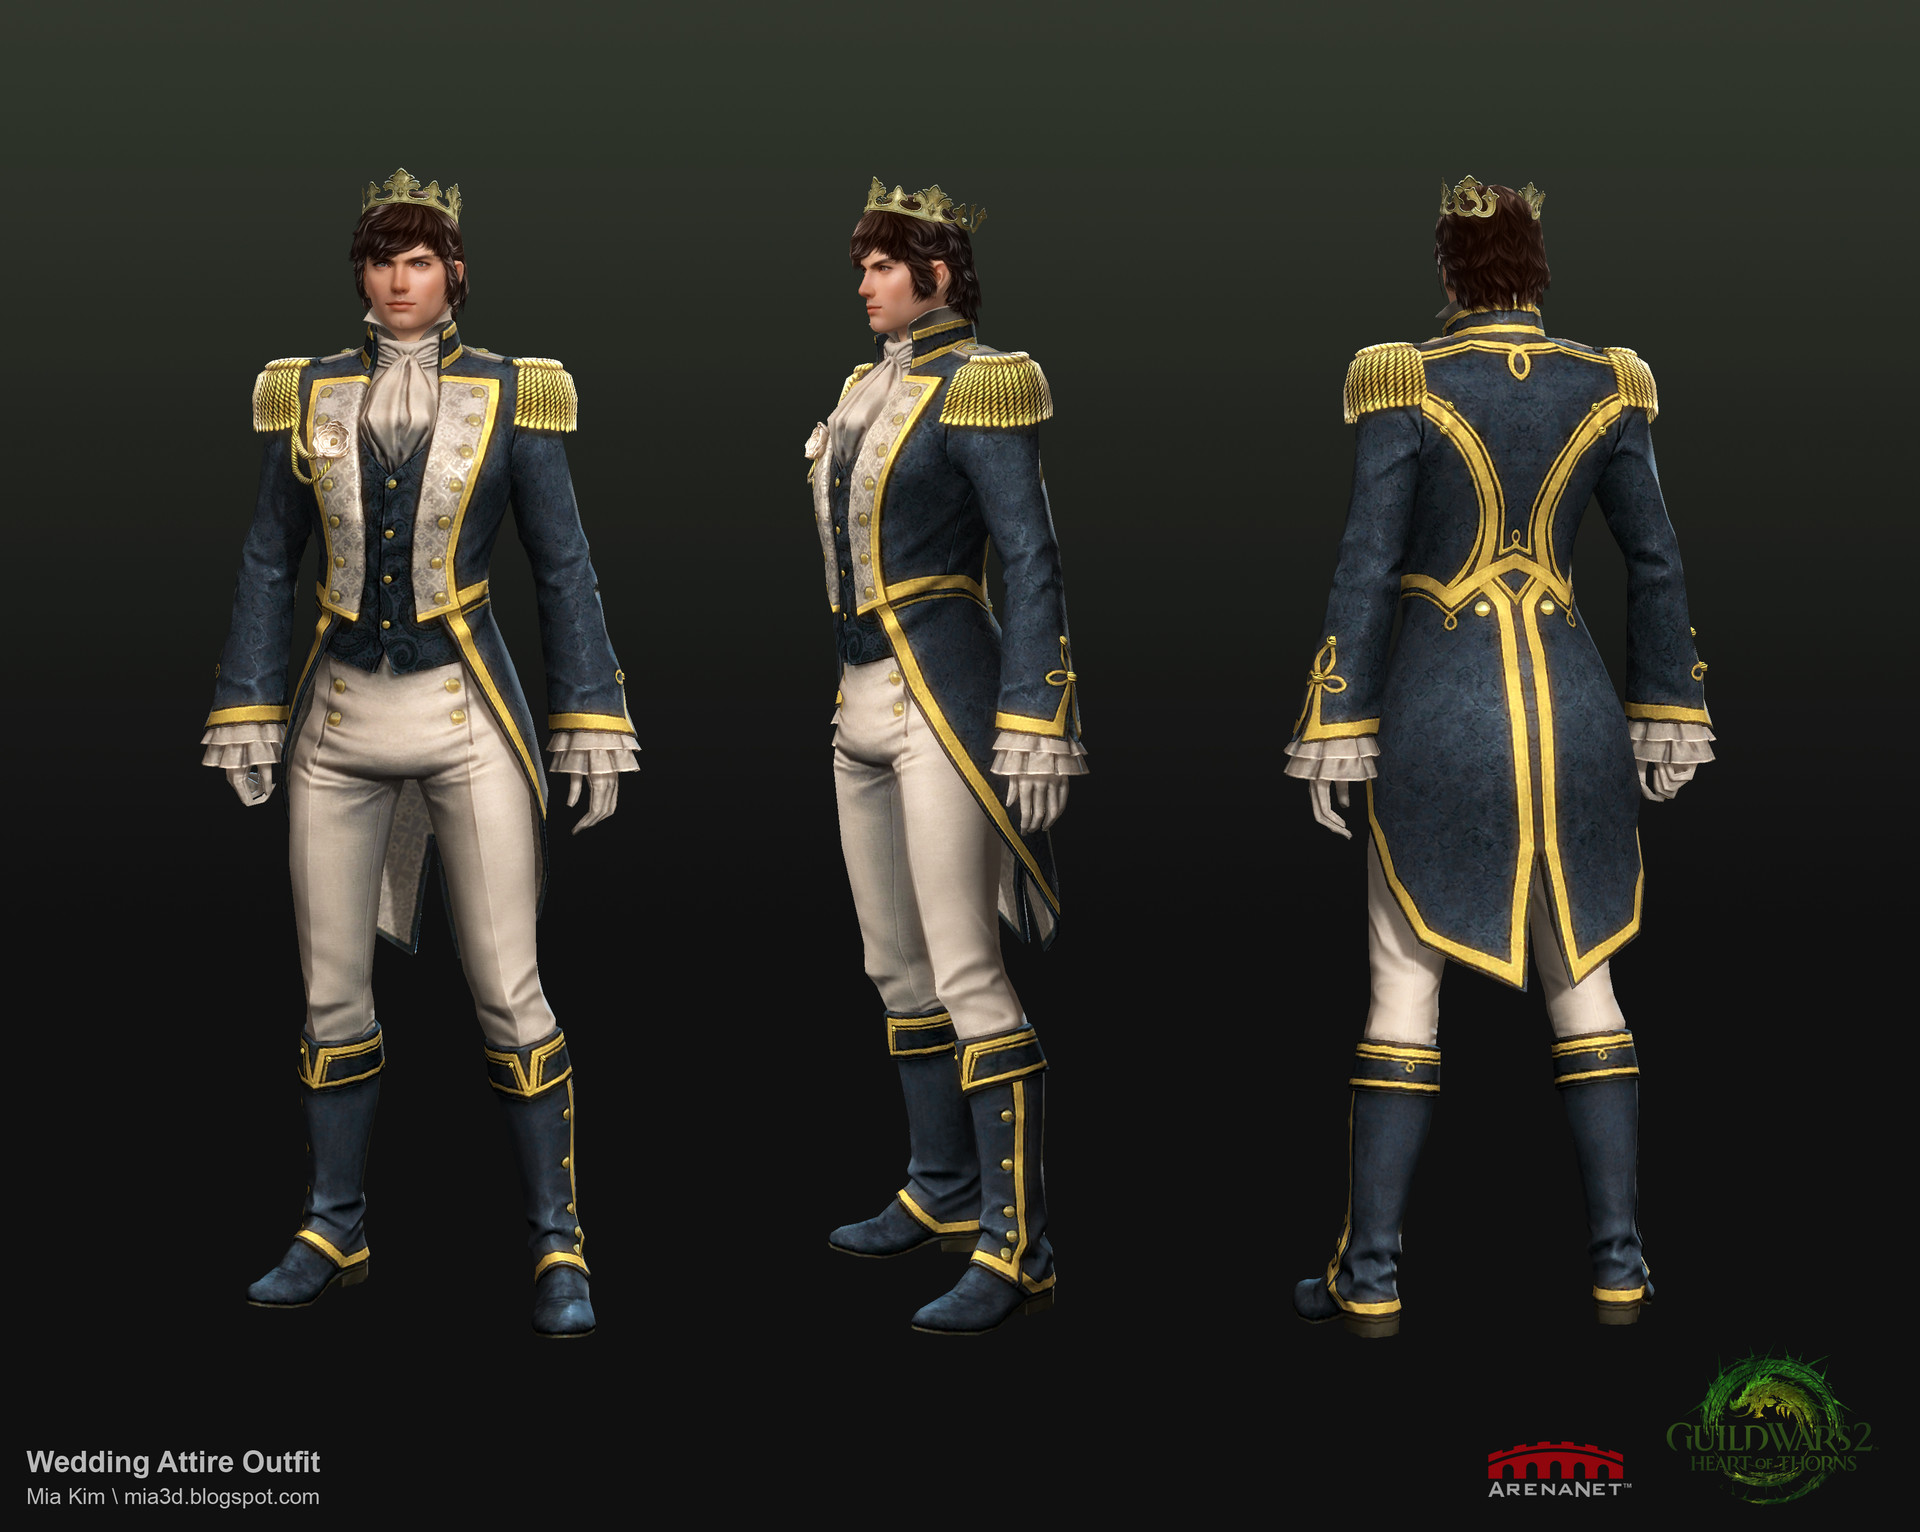 ArtStation - Guild Wars 2 : Wedding outfit for Human Male